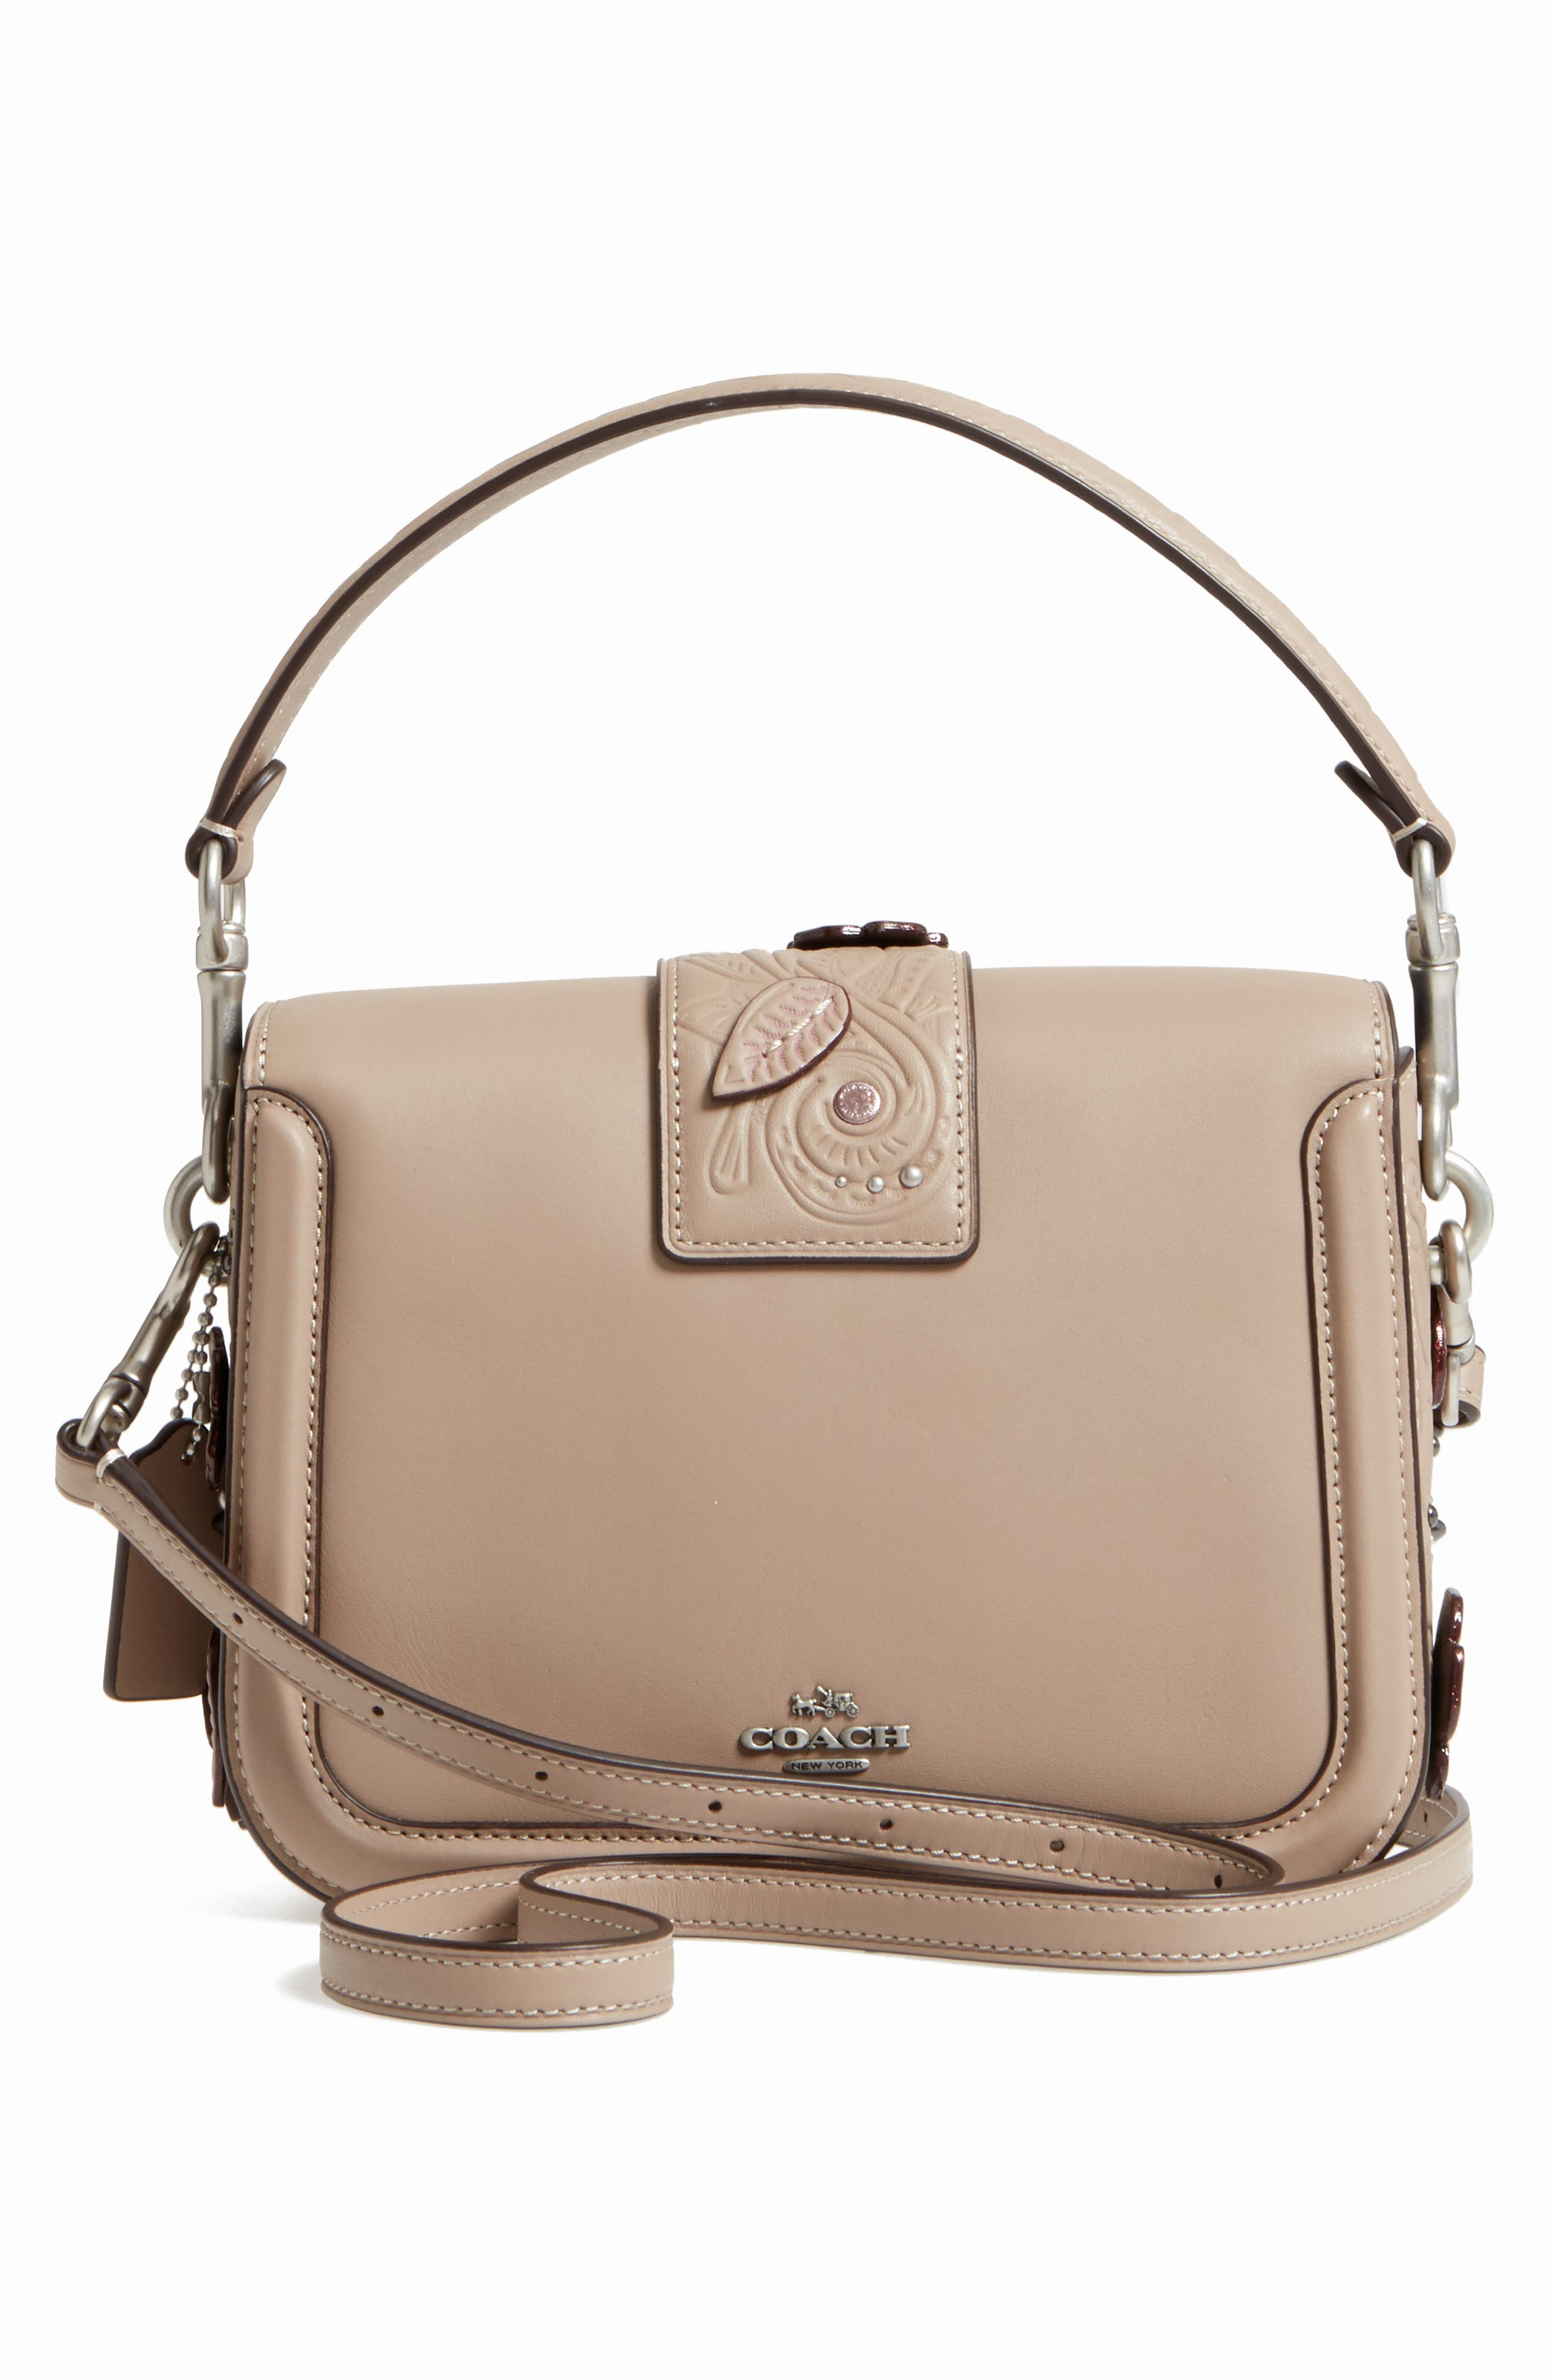 Page Tea Rose Tooled Calfskin Leather Top Handle Satchel,                             Alternate thumbnail 3, color,                             020